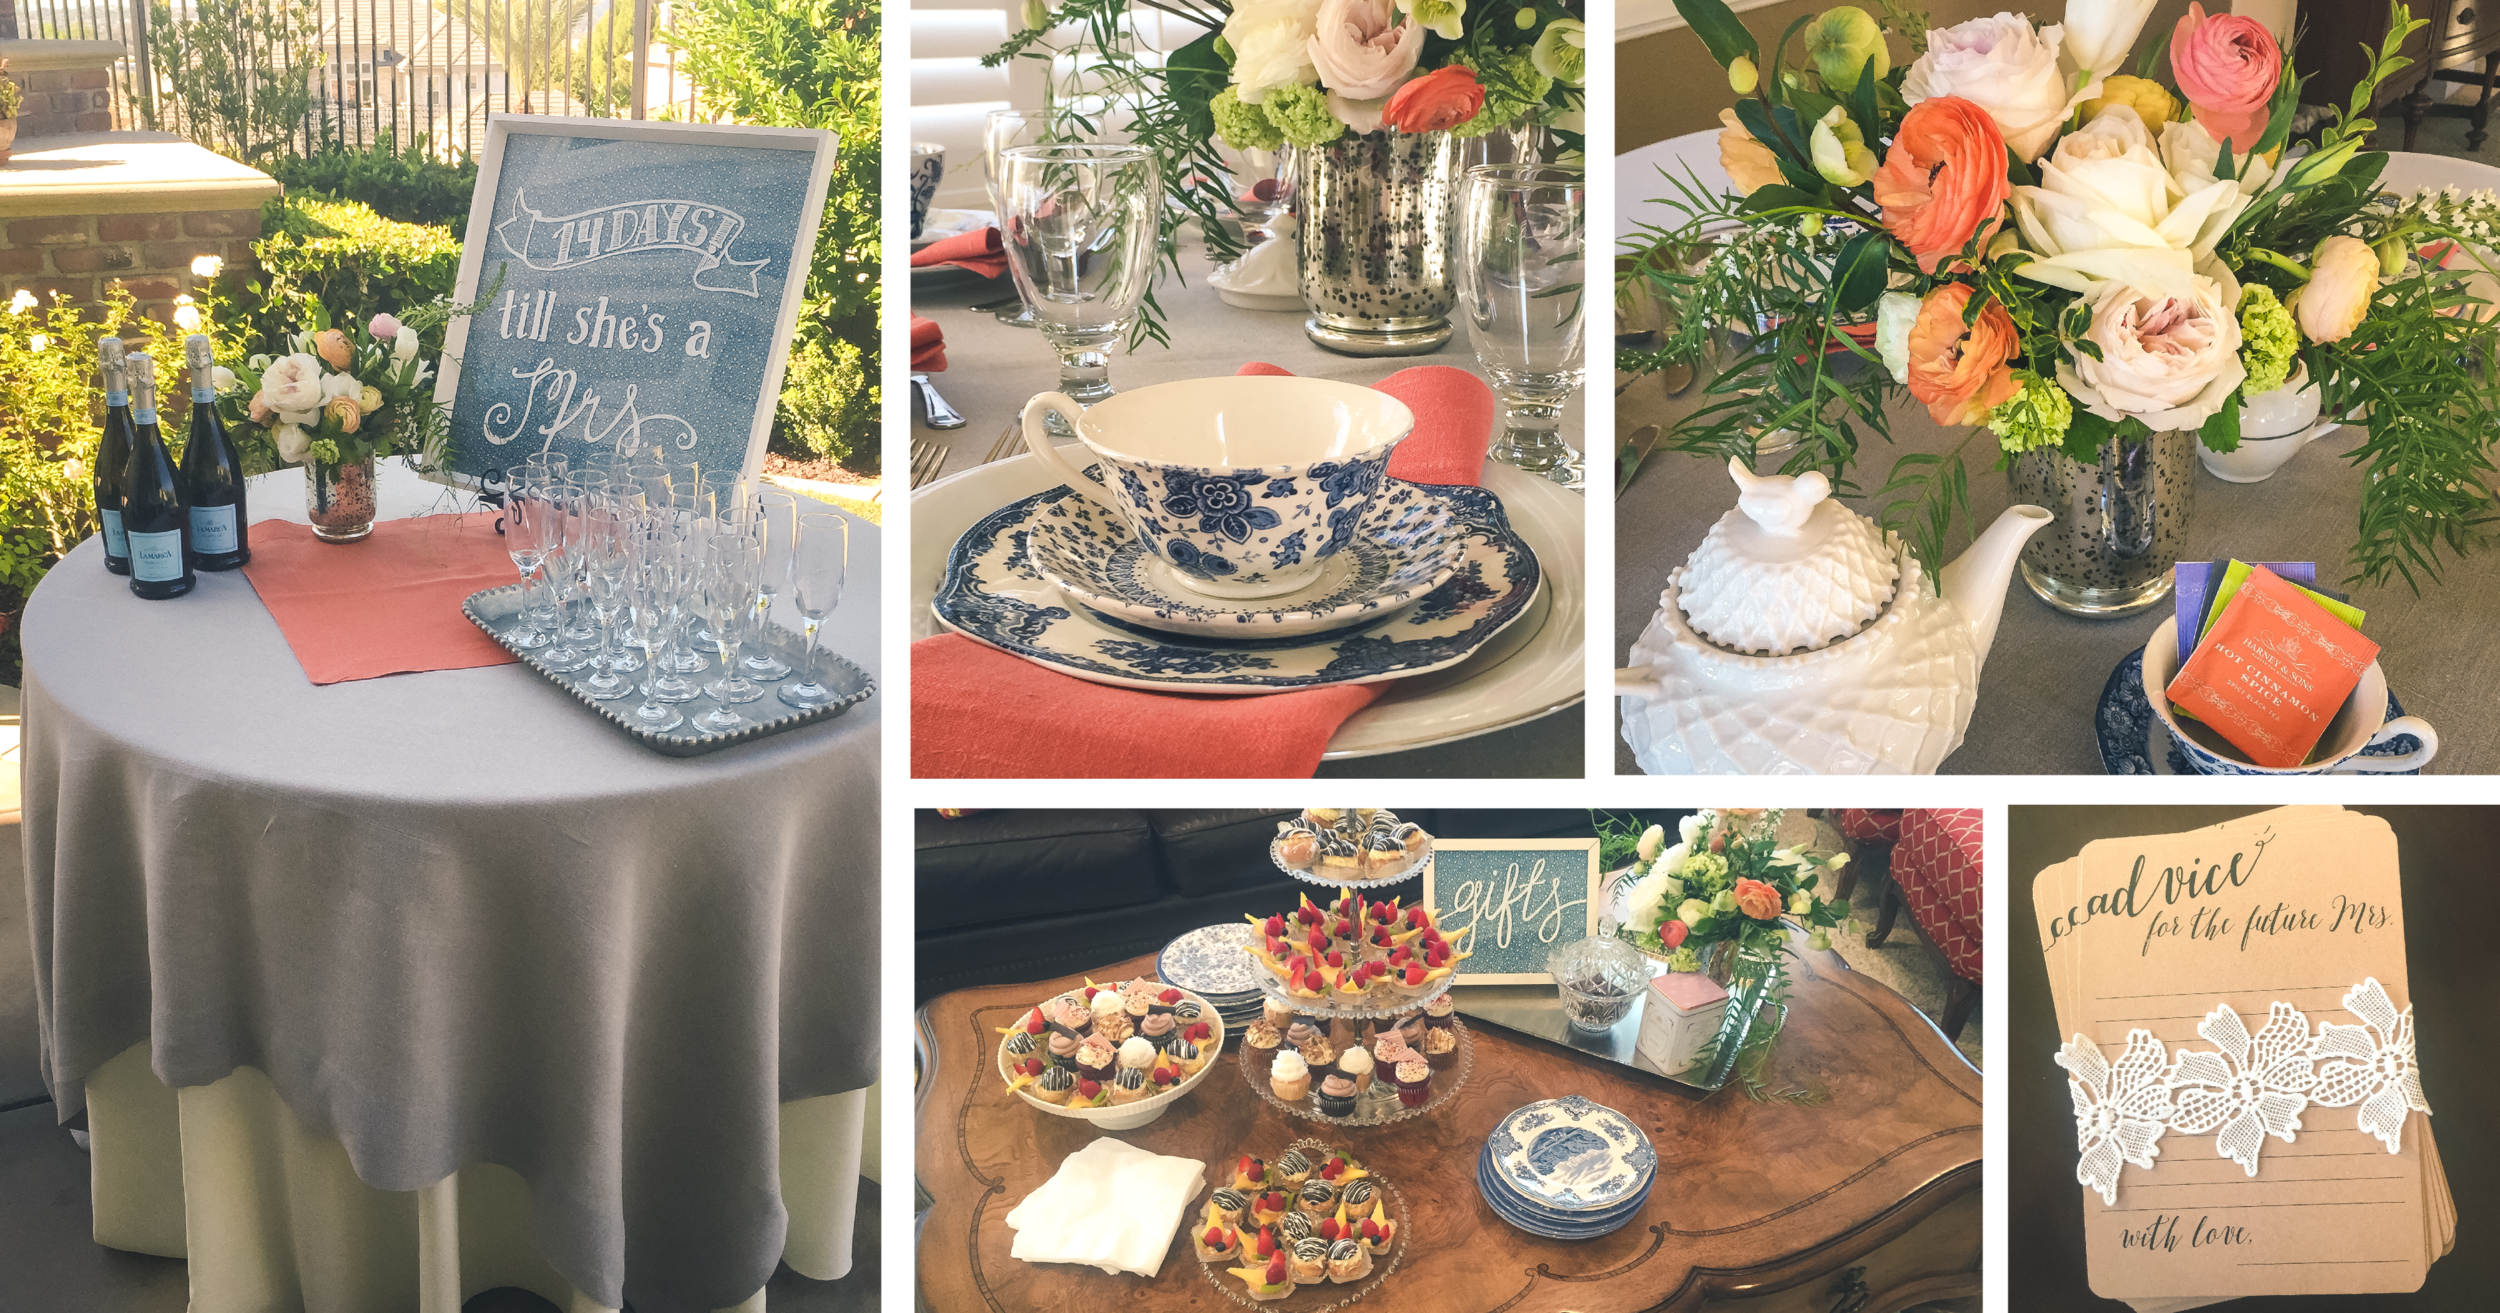 Planning:  Renee Elise Luxury Events  - Venue: Private Residence -Catering:  Jay's Catering  - Linens:  La Tavola Fine Linen  - China:  Dish Wish  - Florals:  Bellatula